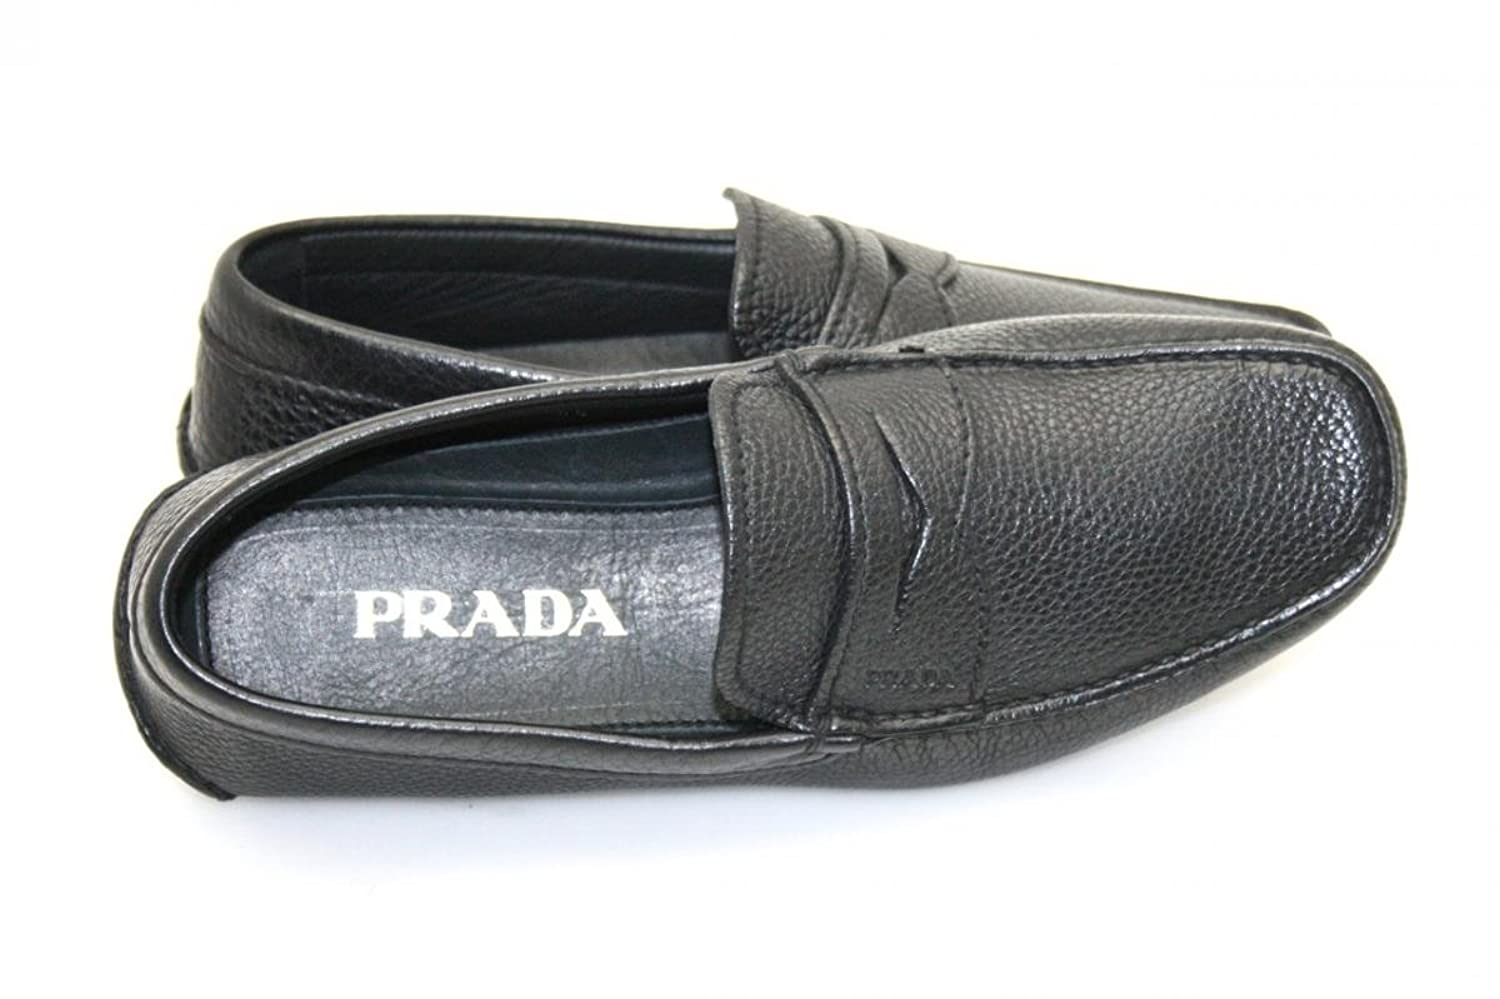 8eb9fe84d3b5 ... get amazon prada mens 2d1102 black leather loafers eu 5.5 39 5 us 6.5  loafers slip ...